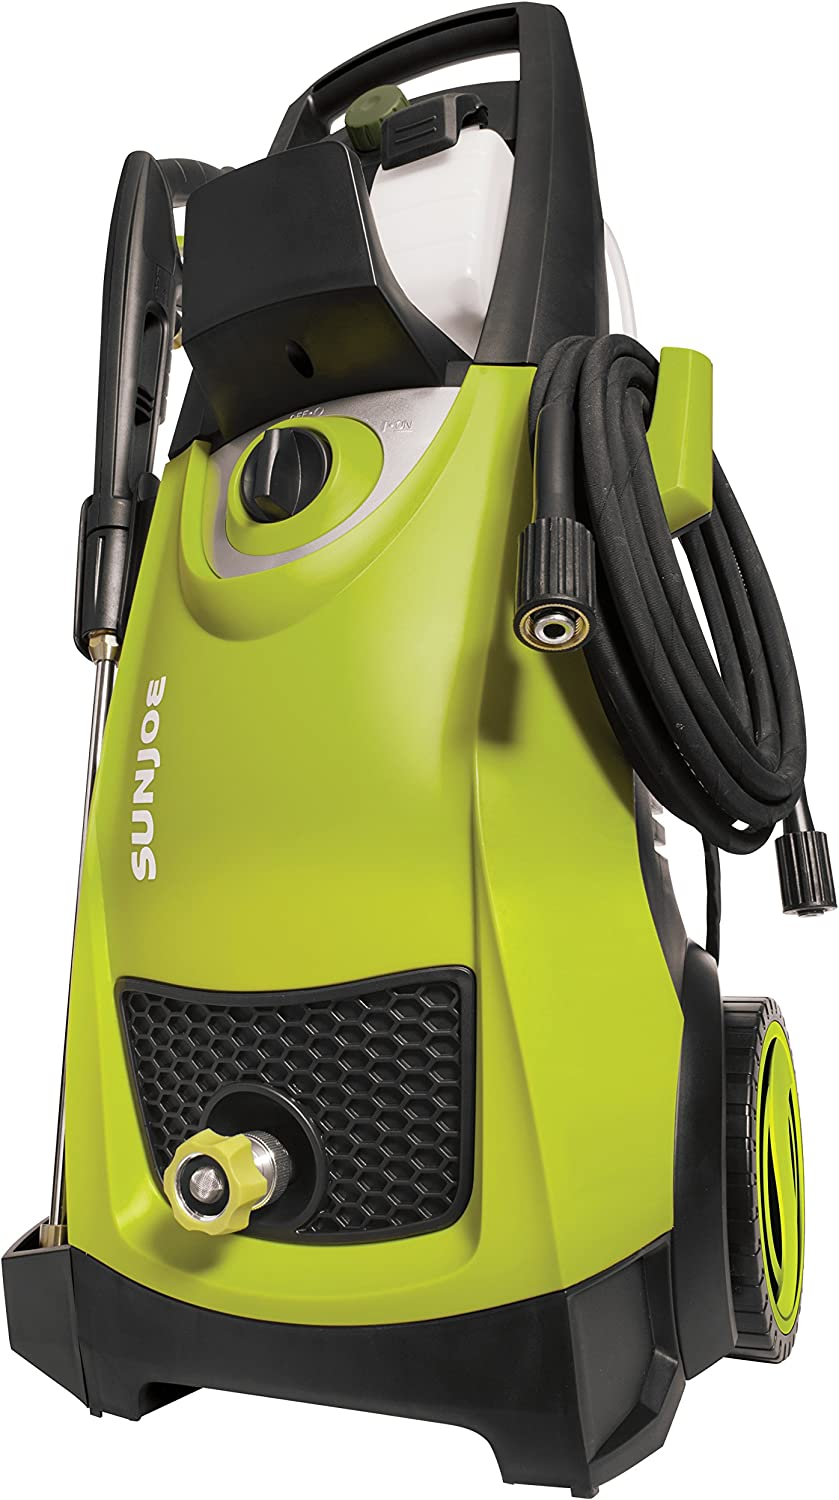 pressure washer gpm